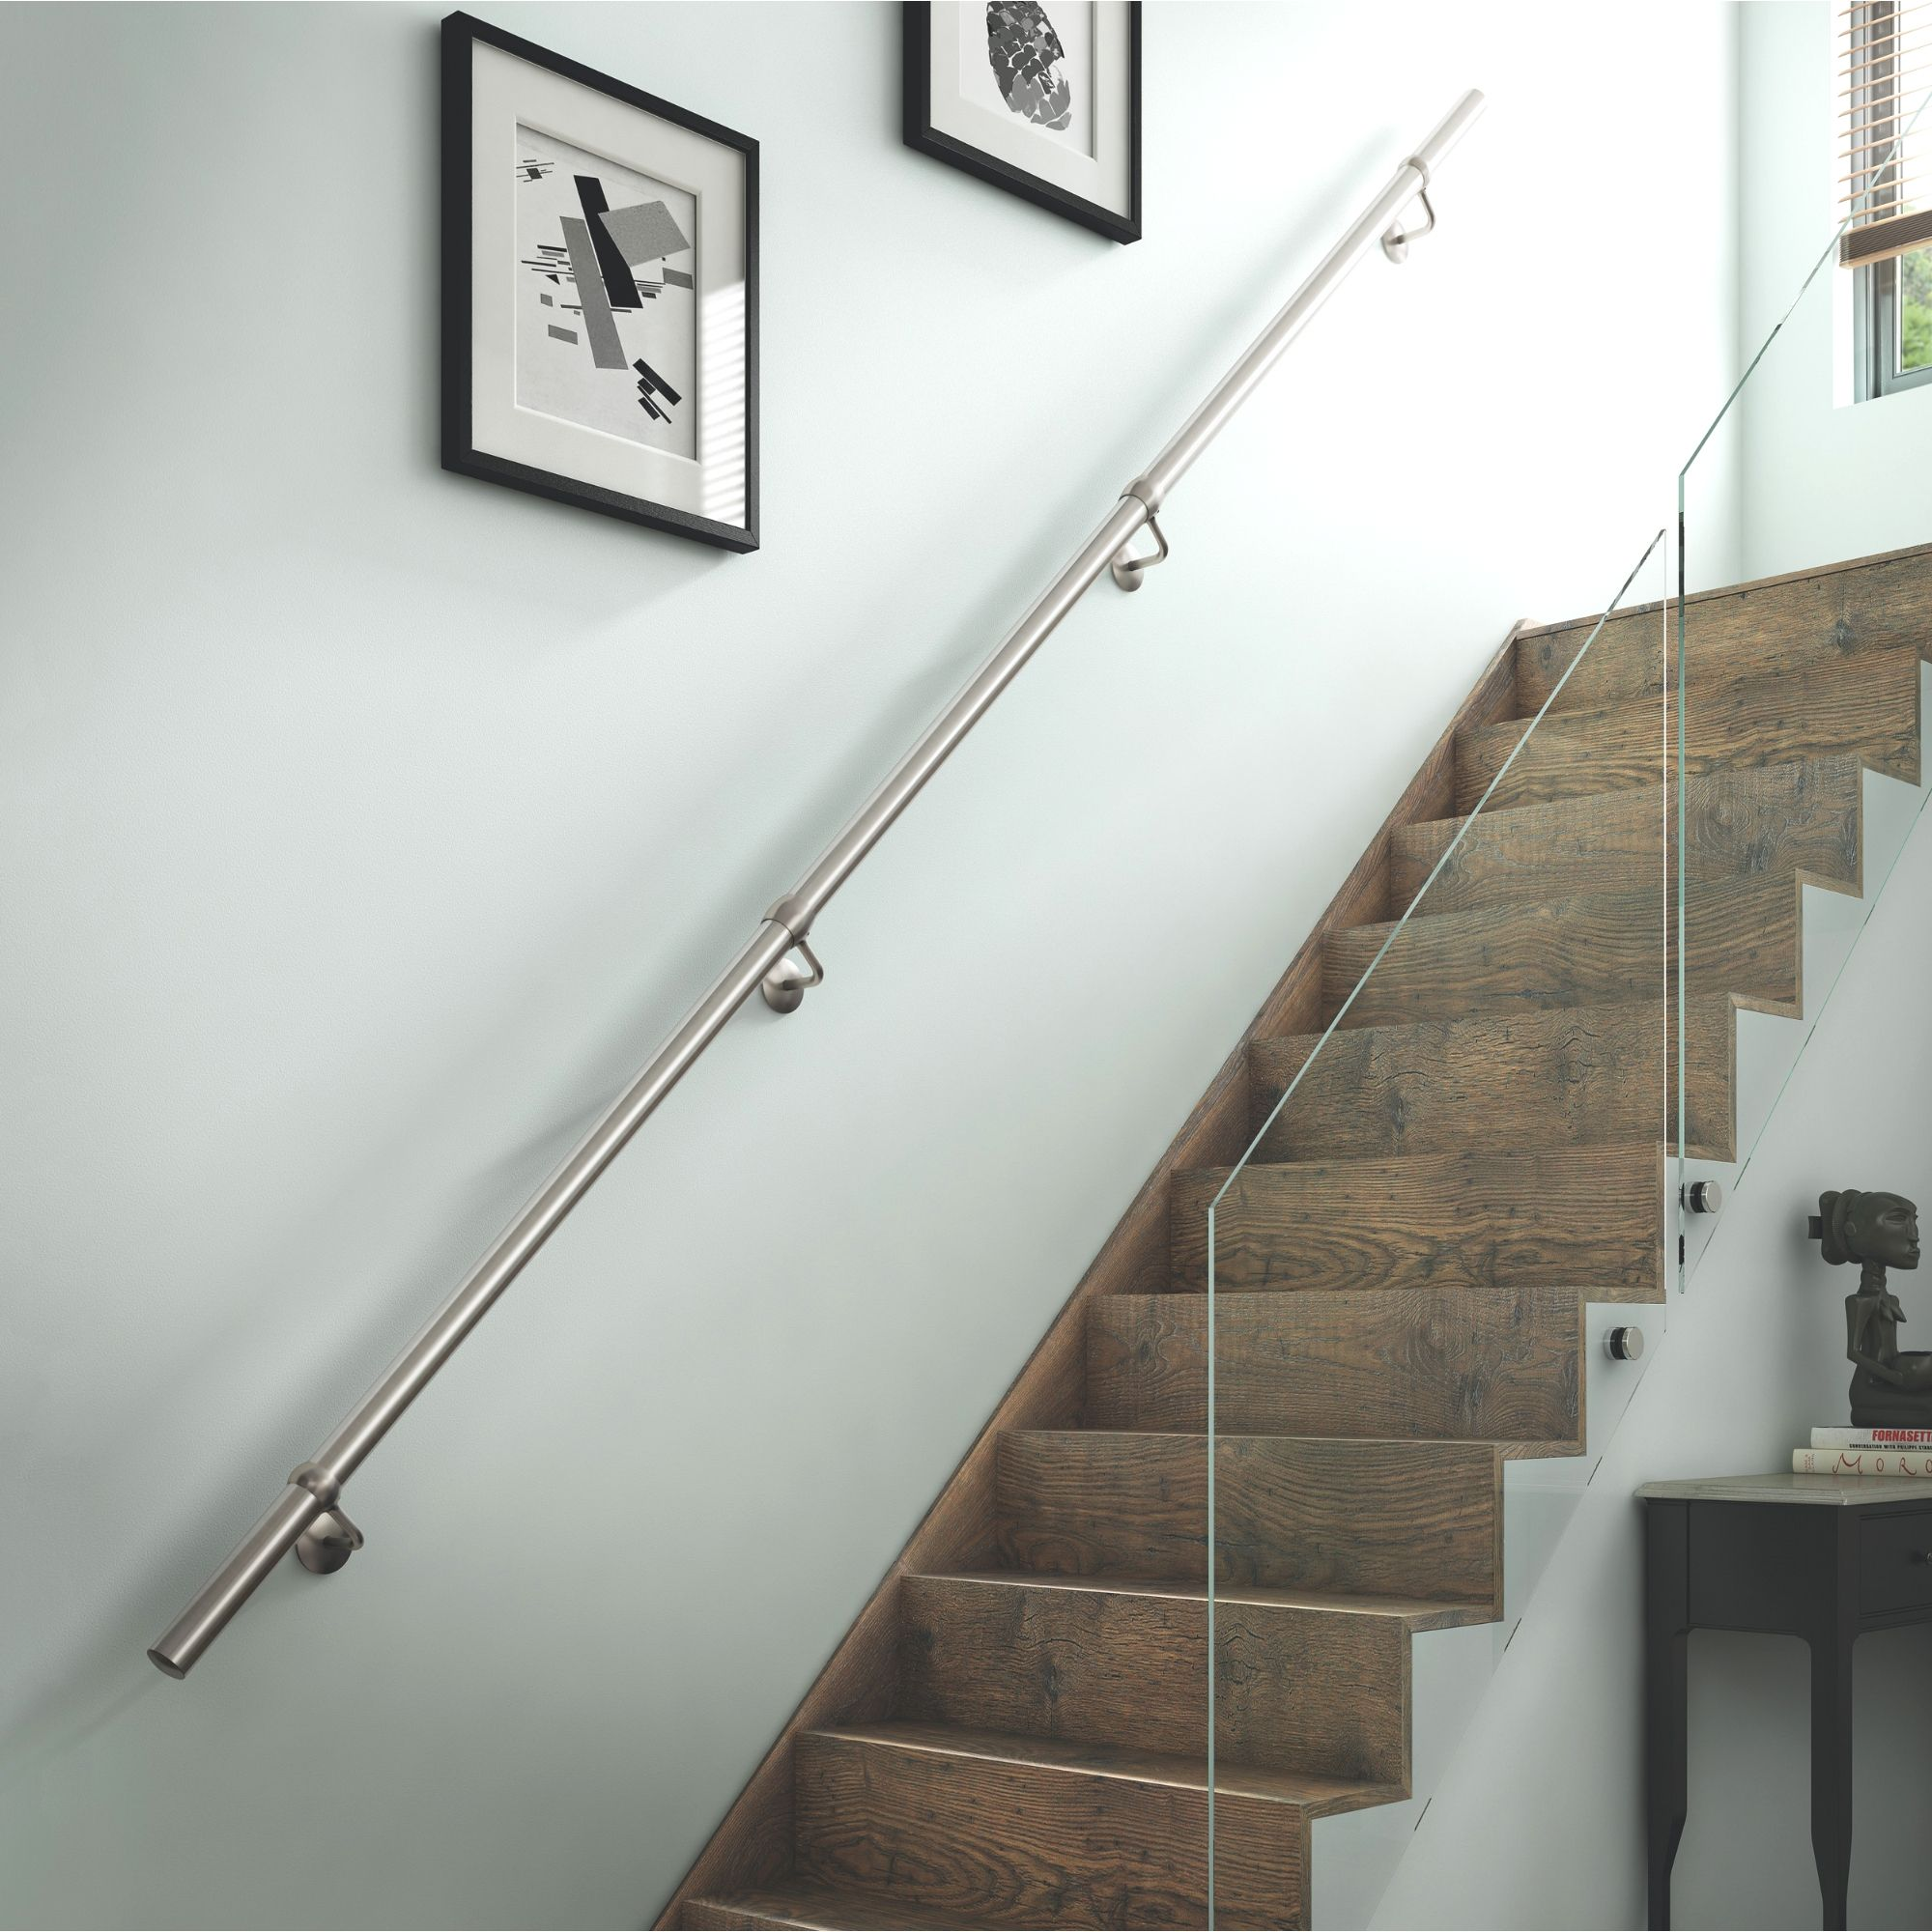 Stainless Steel Handrail Kit L 3600mm Departments Diy